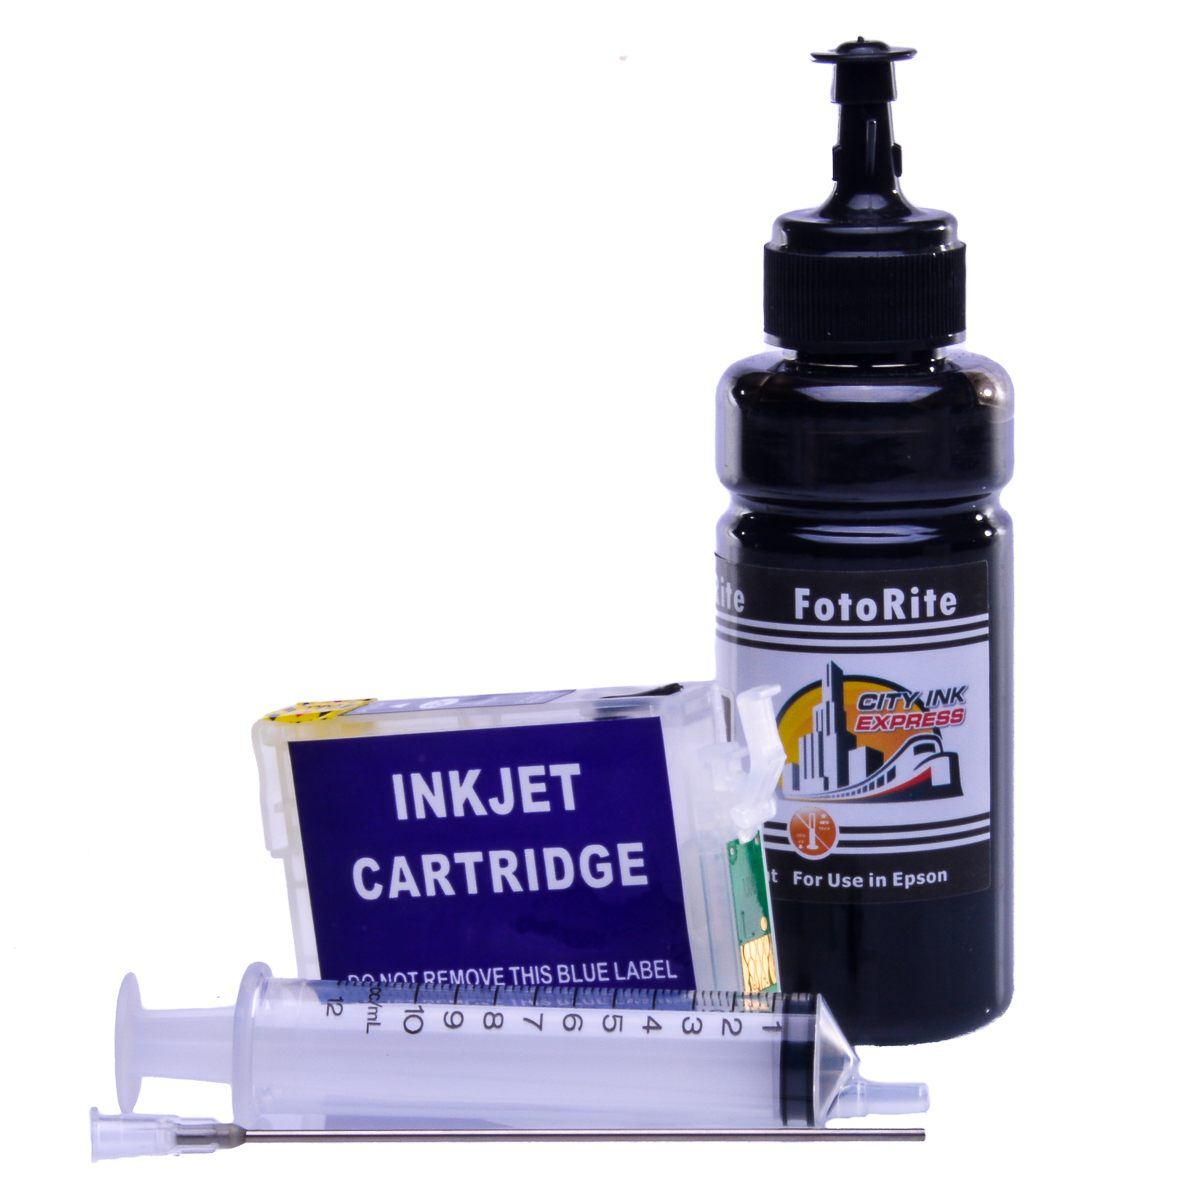 Refillable pigment Cheap printer cartridges for Epson Stylus SX510 C13T07114010 T0711 Black